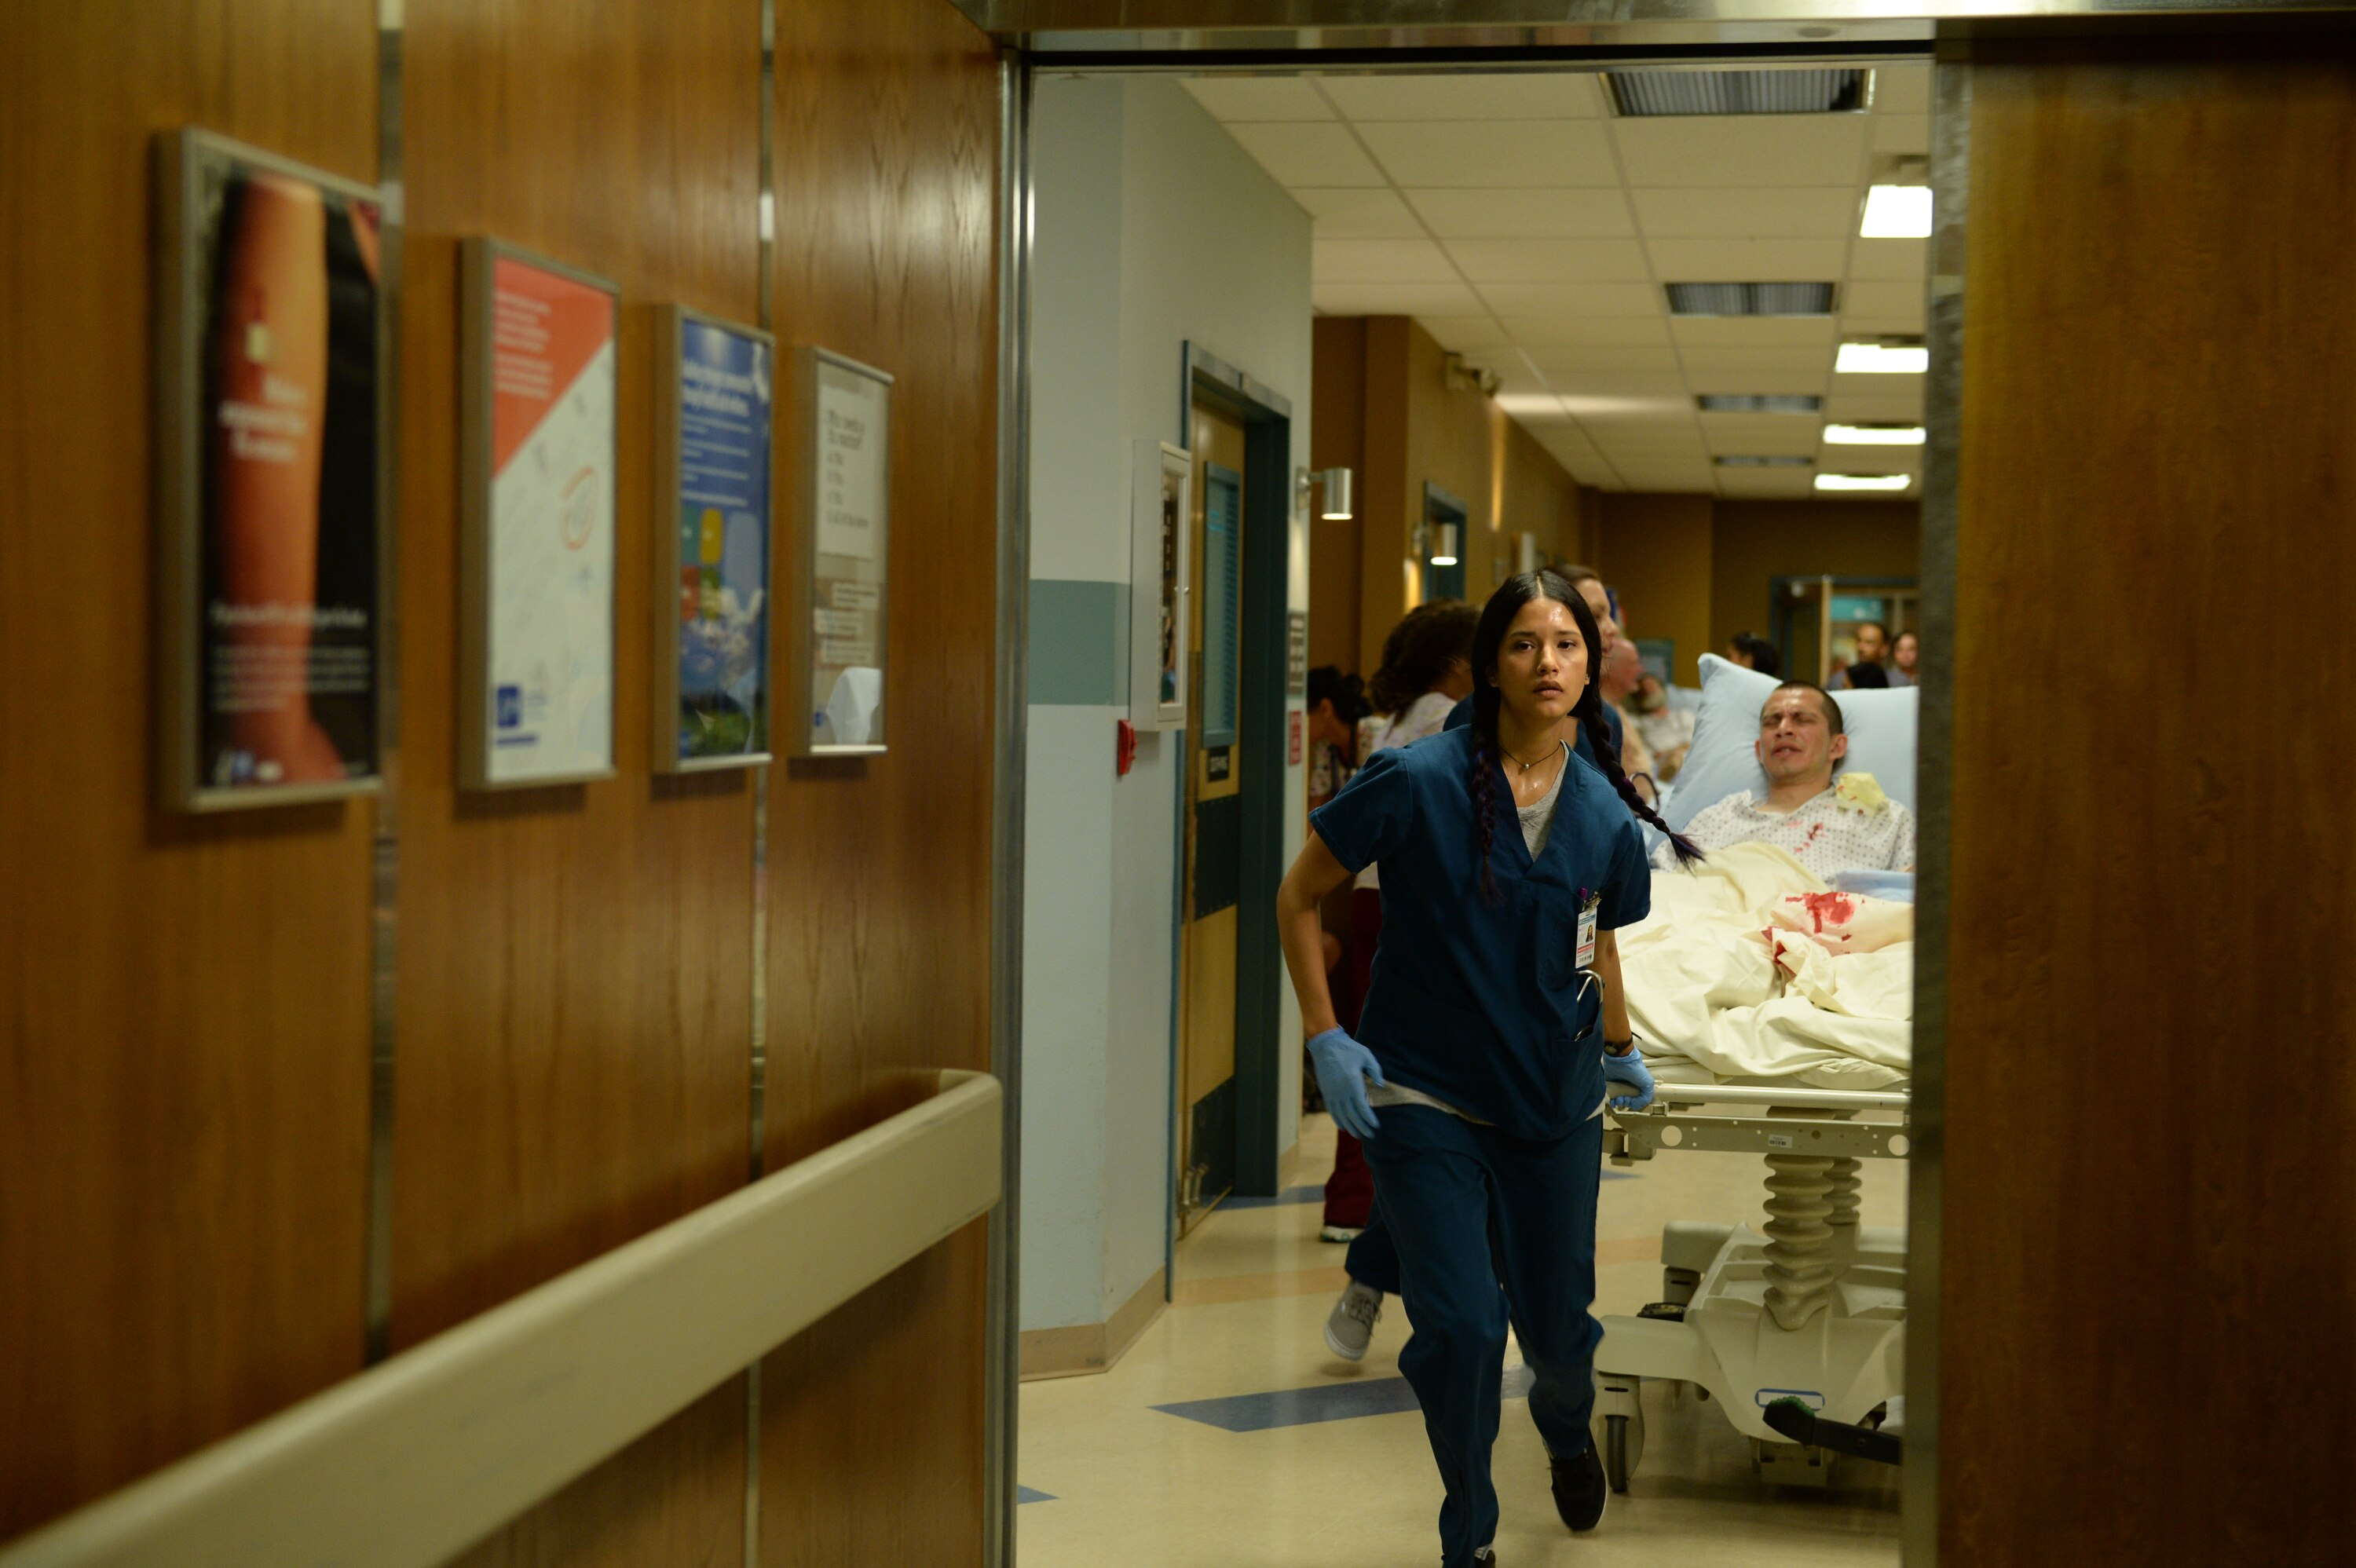 The Night Shift Photos From Hot In The City Photo 2898231 Nbccom